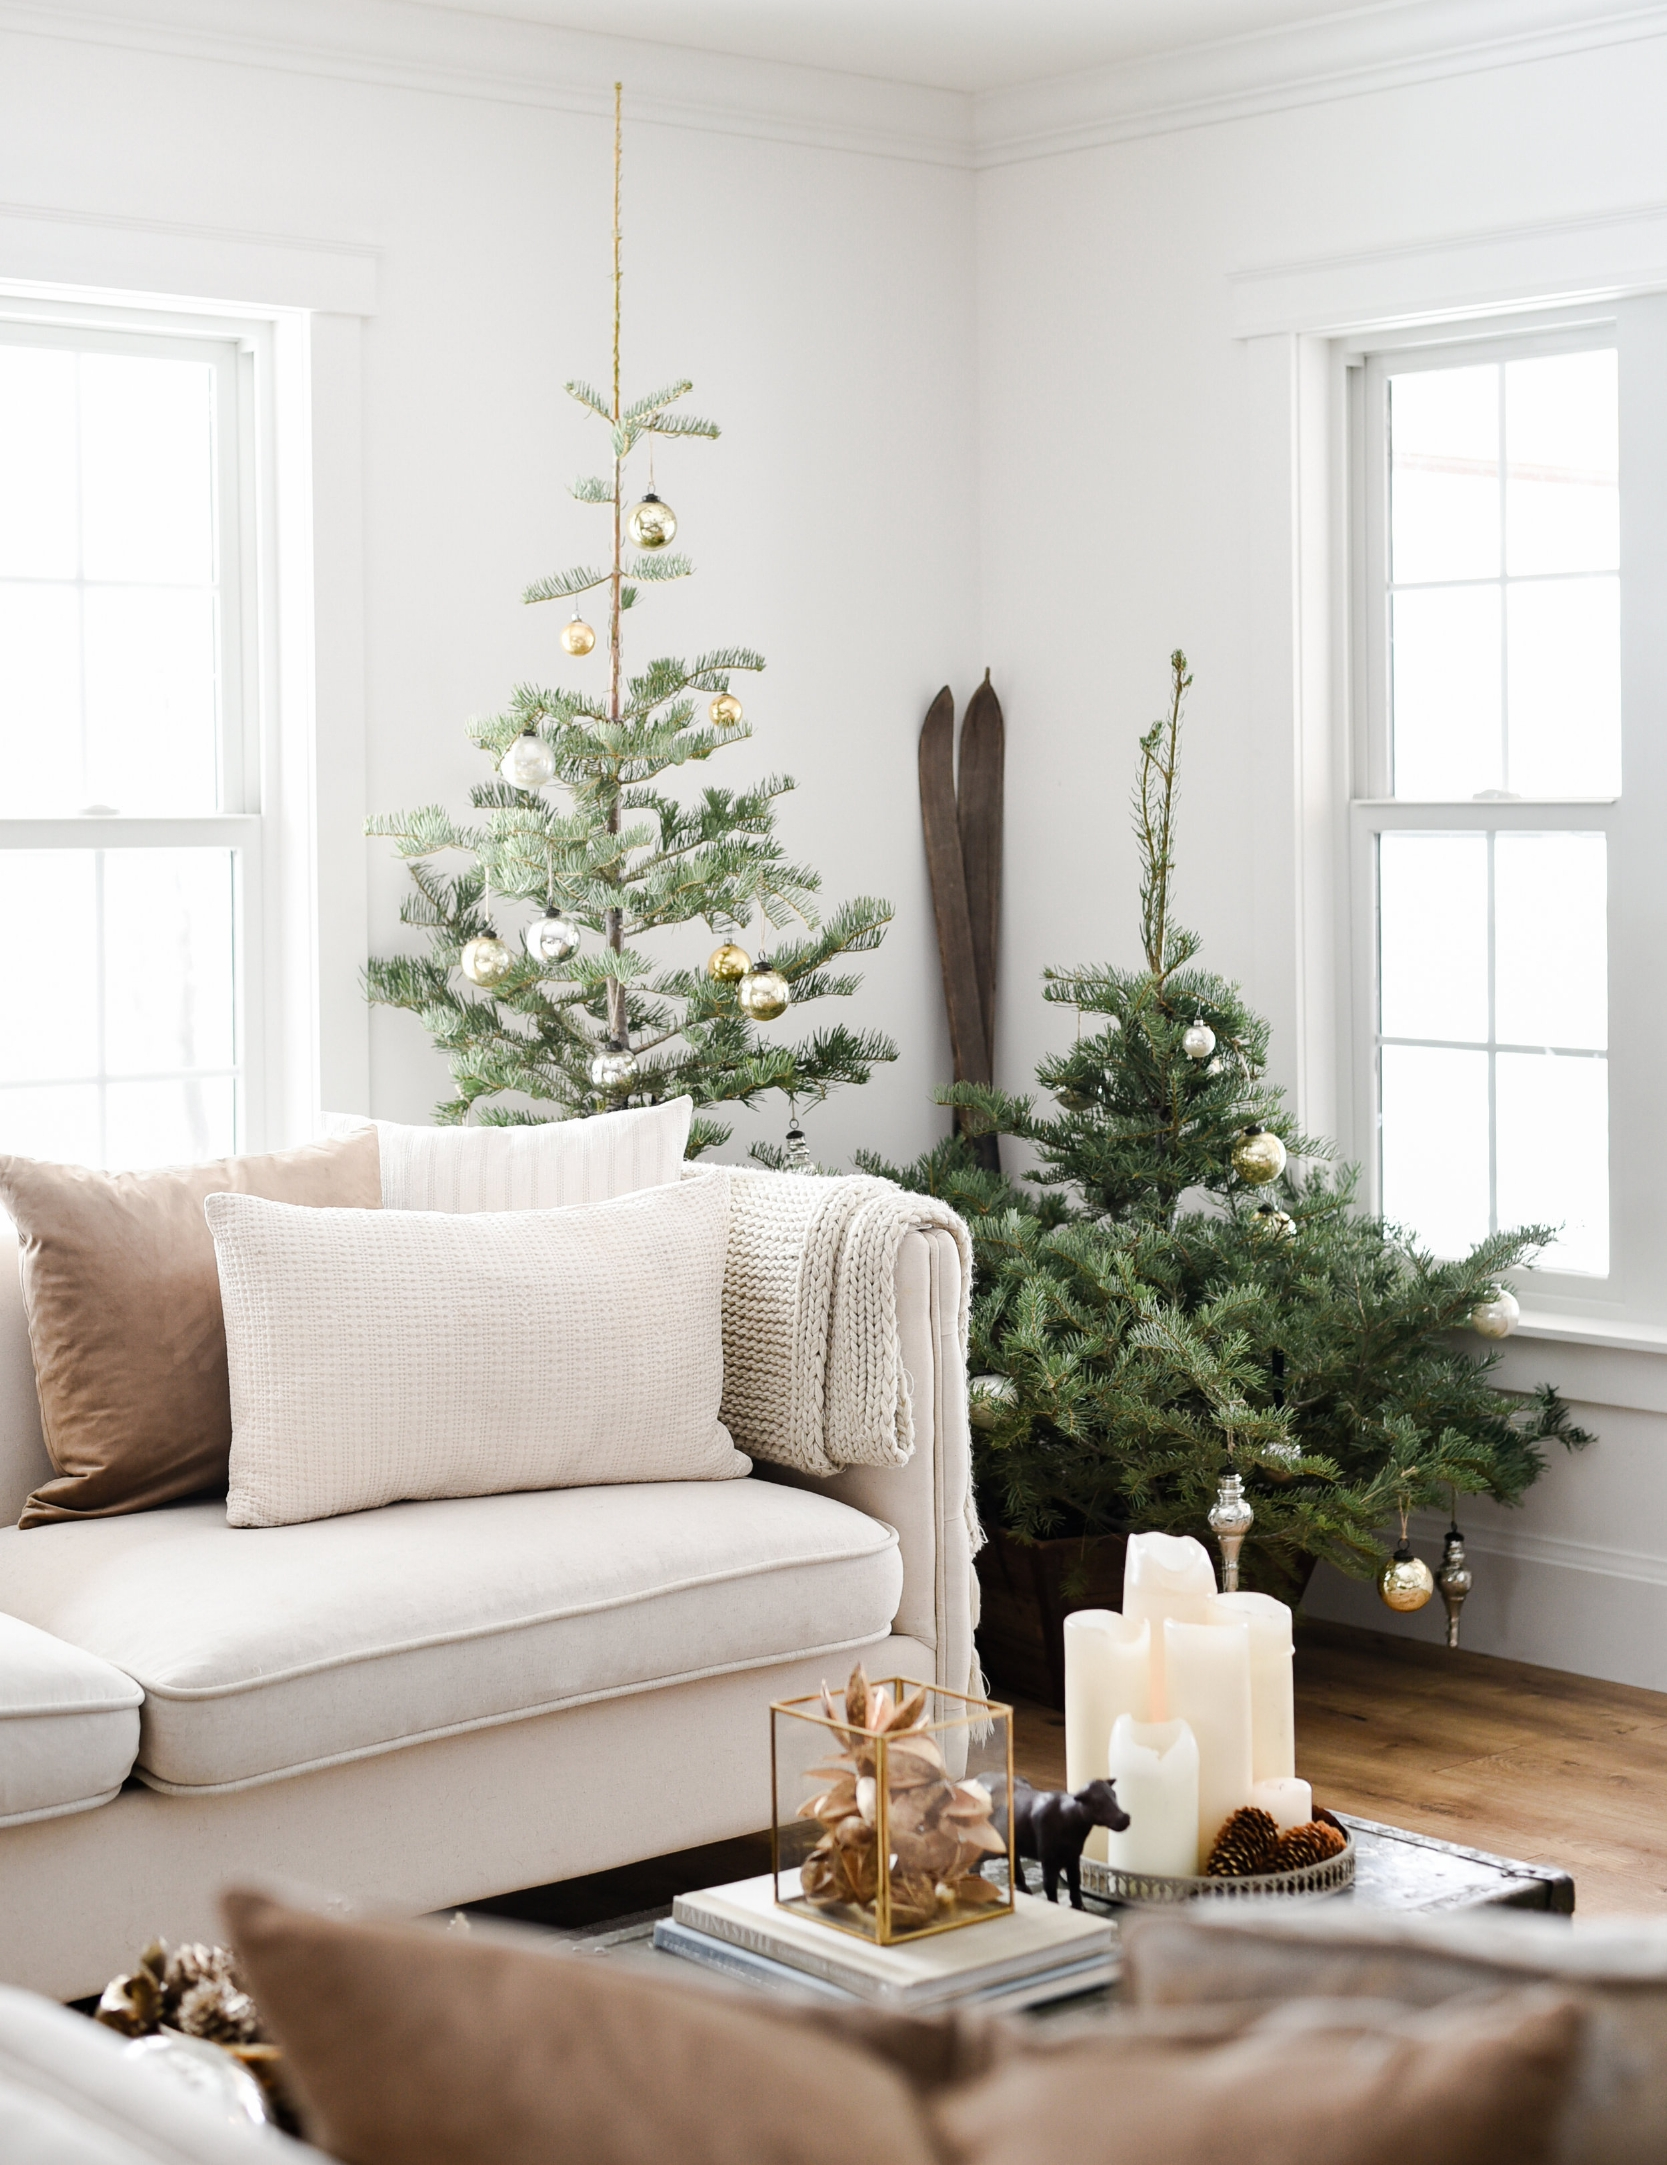 last year's christmas trees - FEATURED IN BETTER HOMES & GARDENS